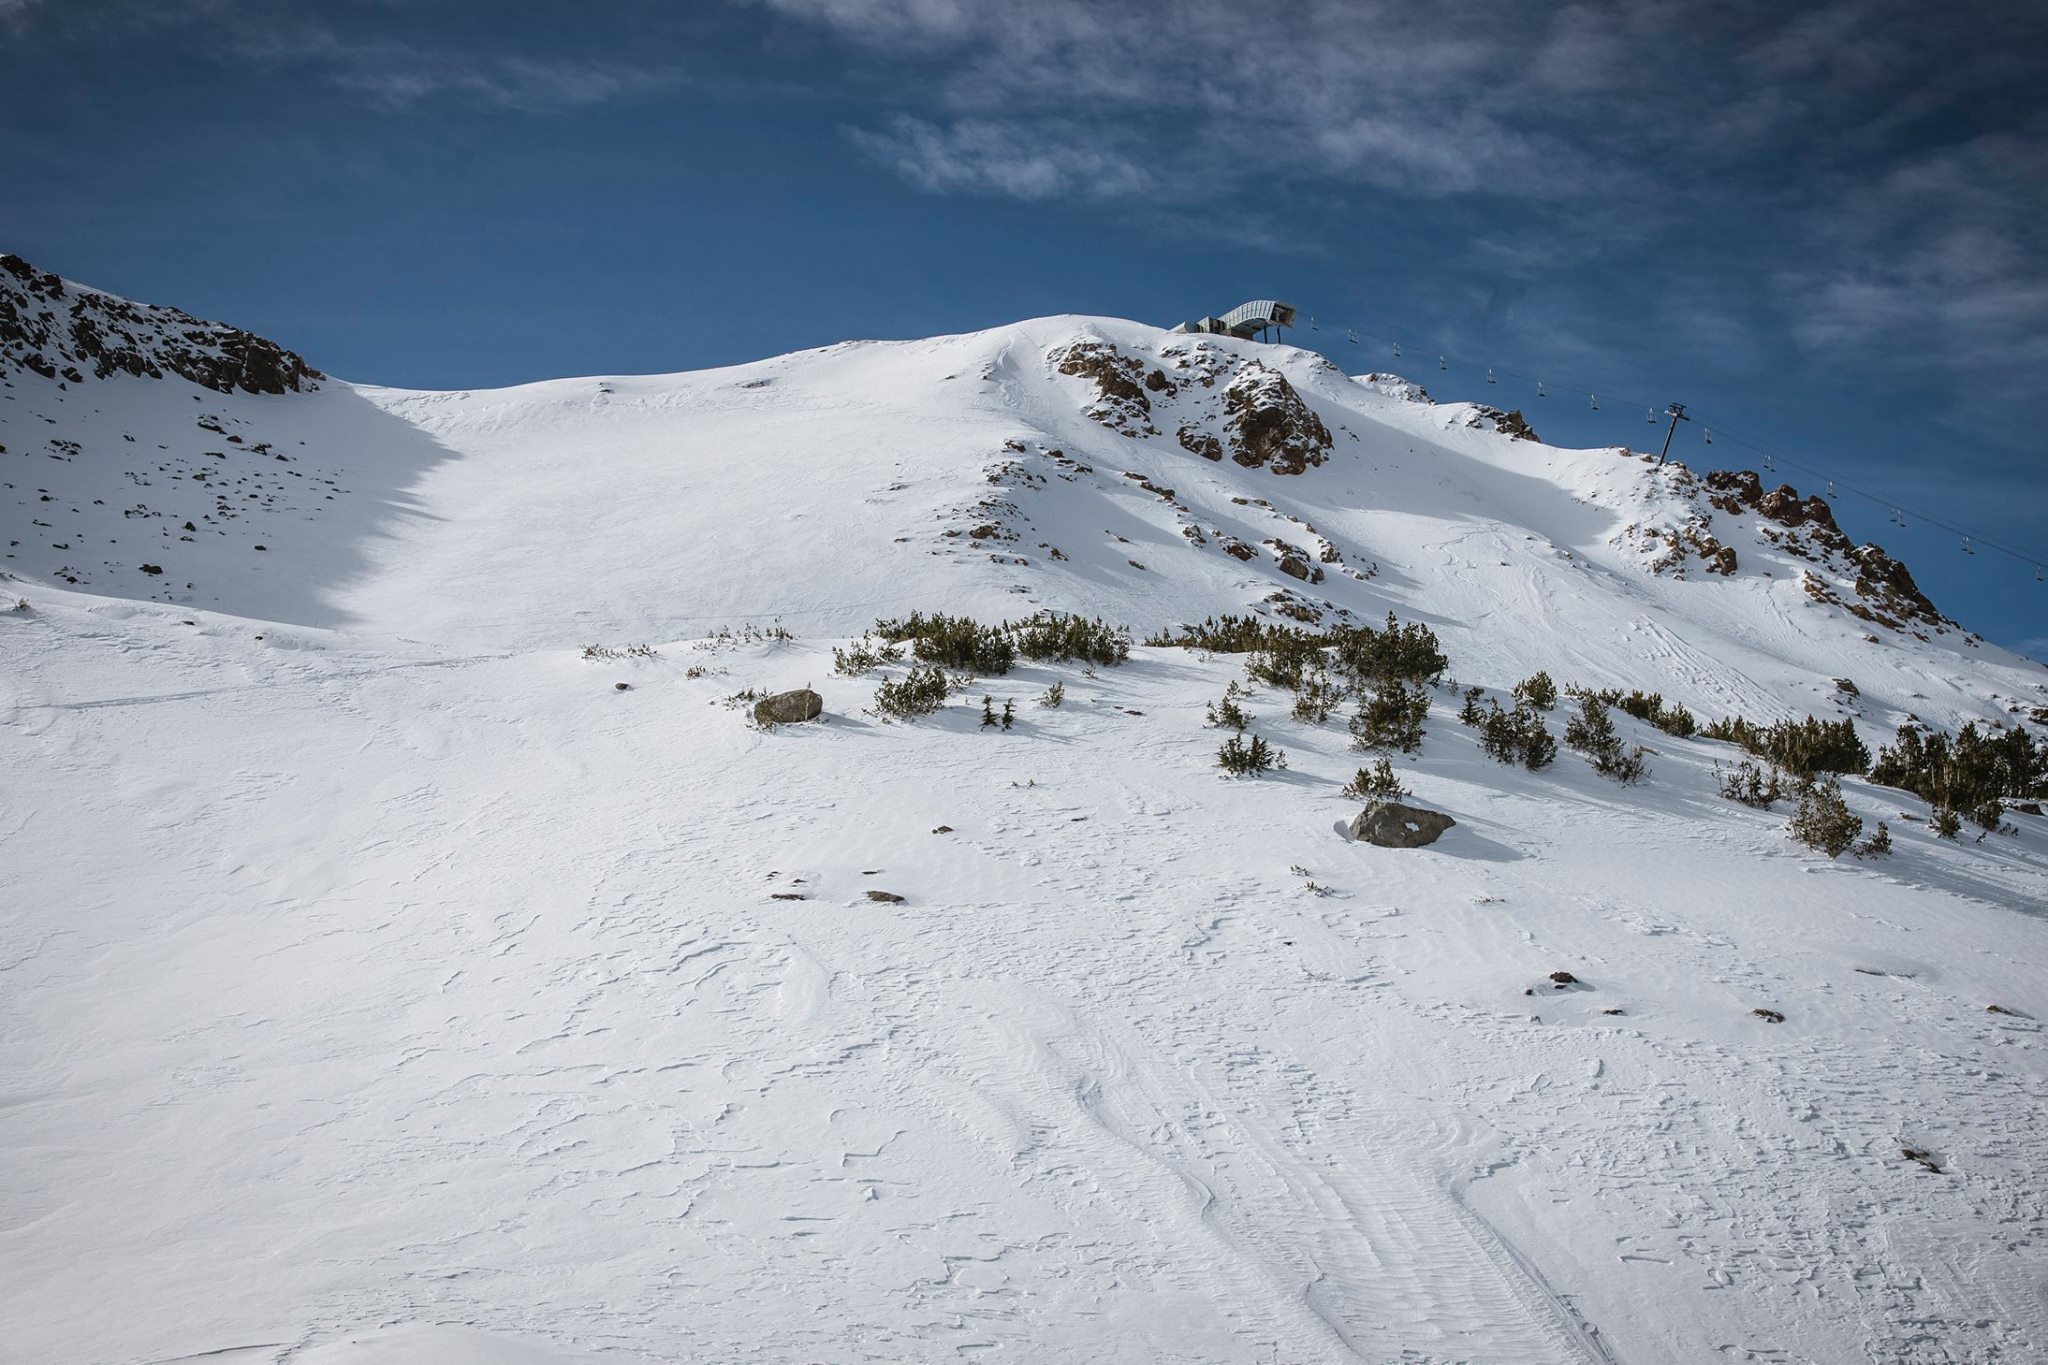 mammoth mountain asian dating website Mammoth mountain, california the ski and snowboard season is here if you are looking for a great place to ski or snowboard this winter i highly recommend planning a family vacation to mammoth mountain.